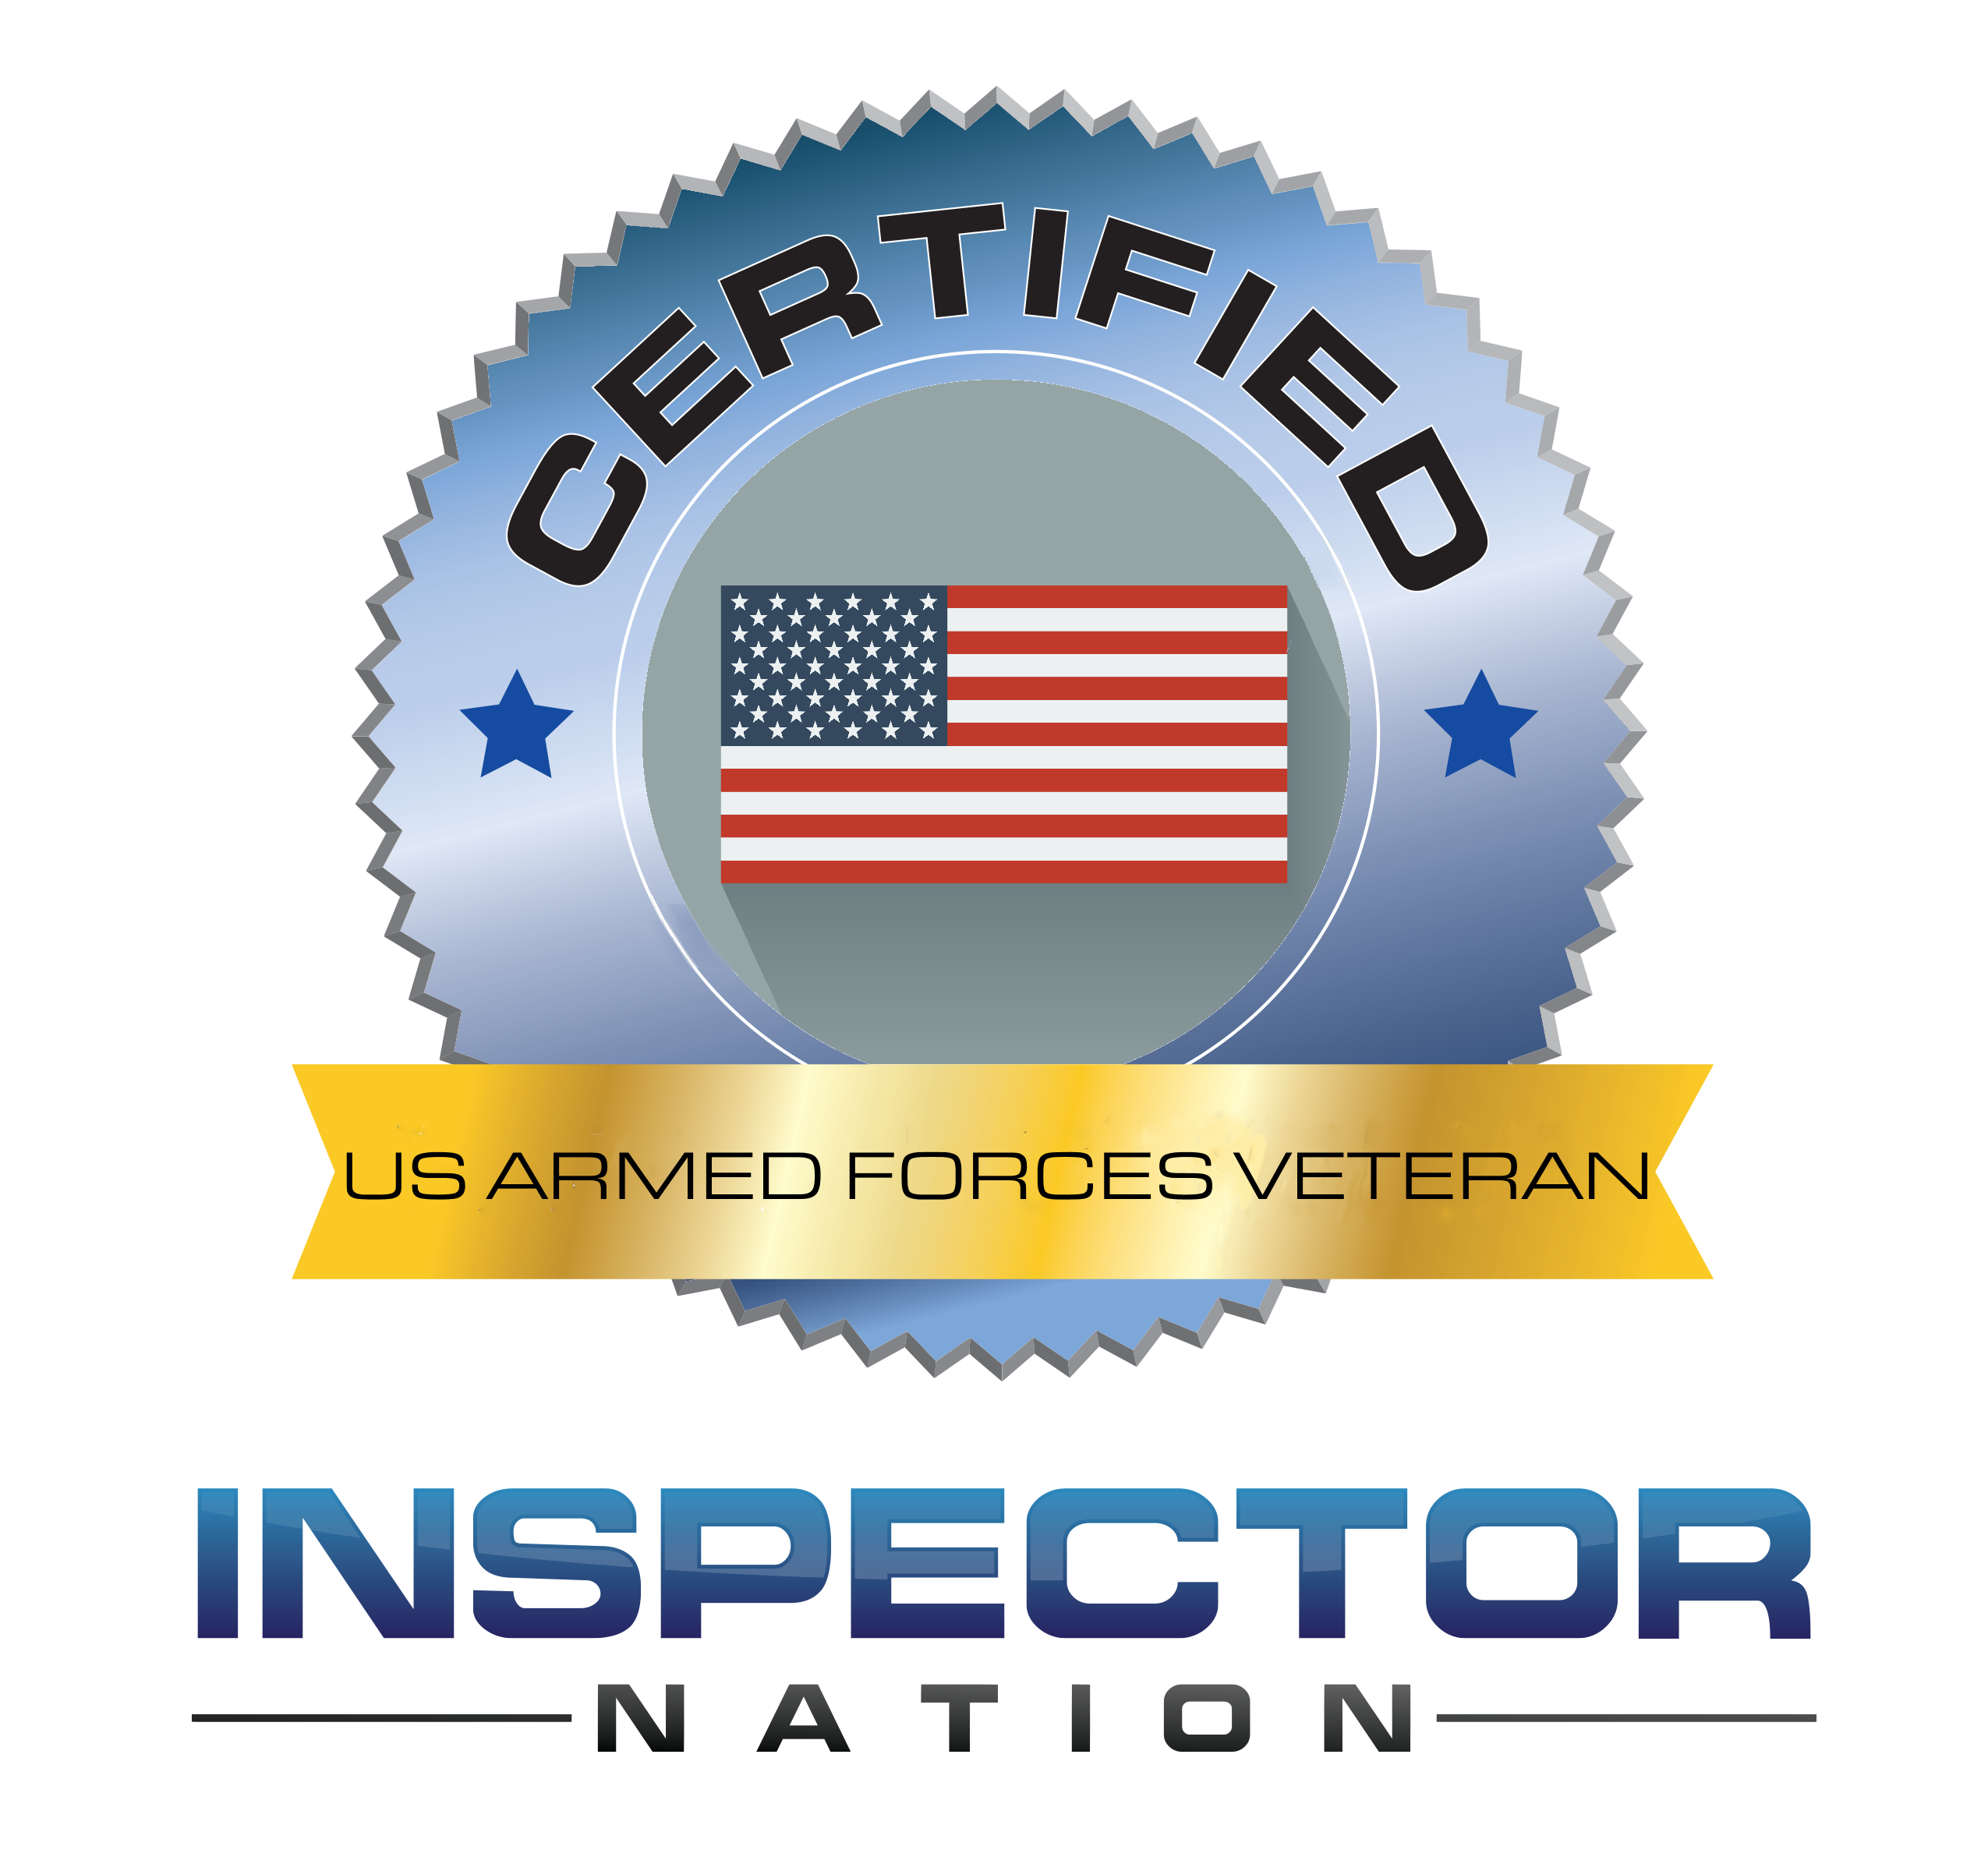 united states us armed forces veteran inspector nation certified home inspector badge emblem icon